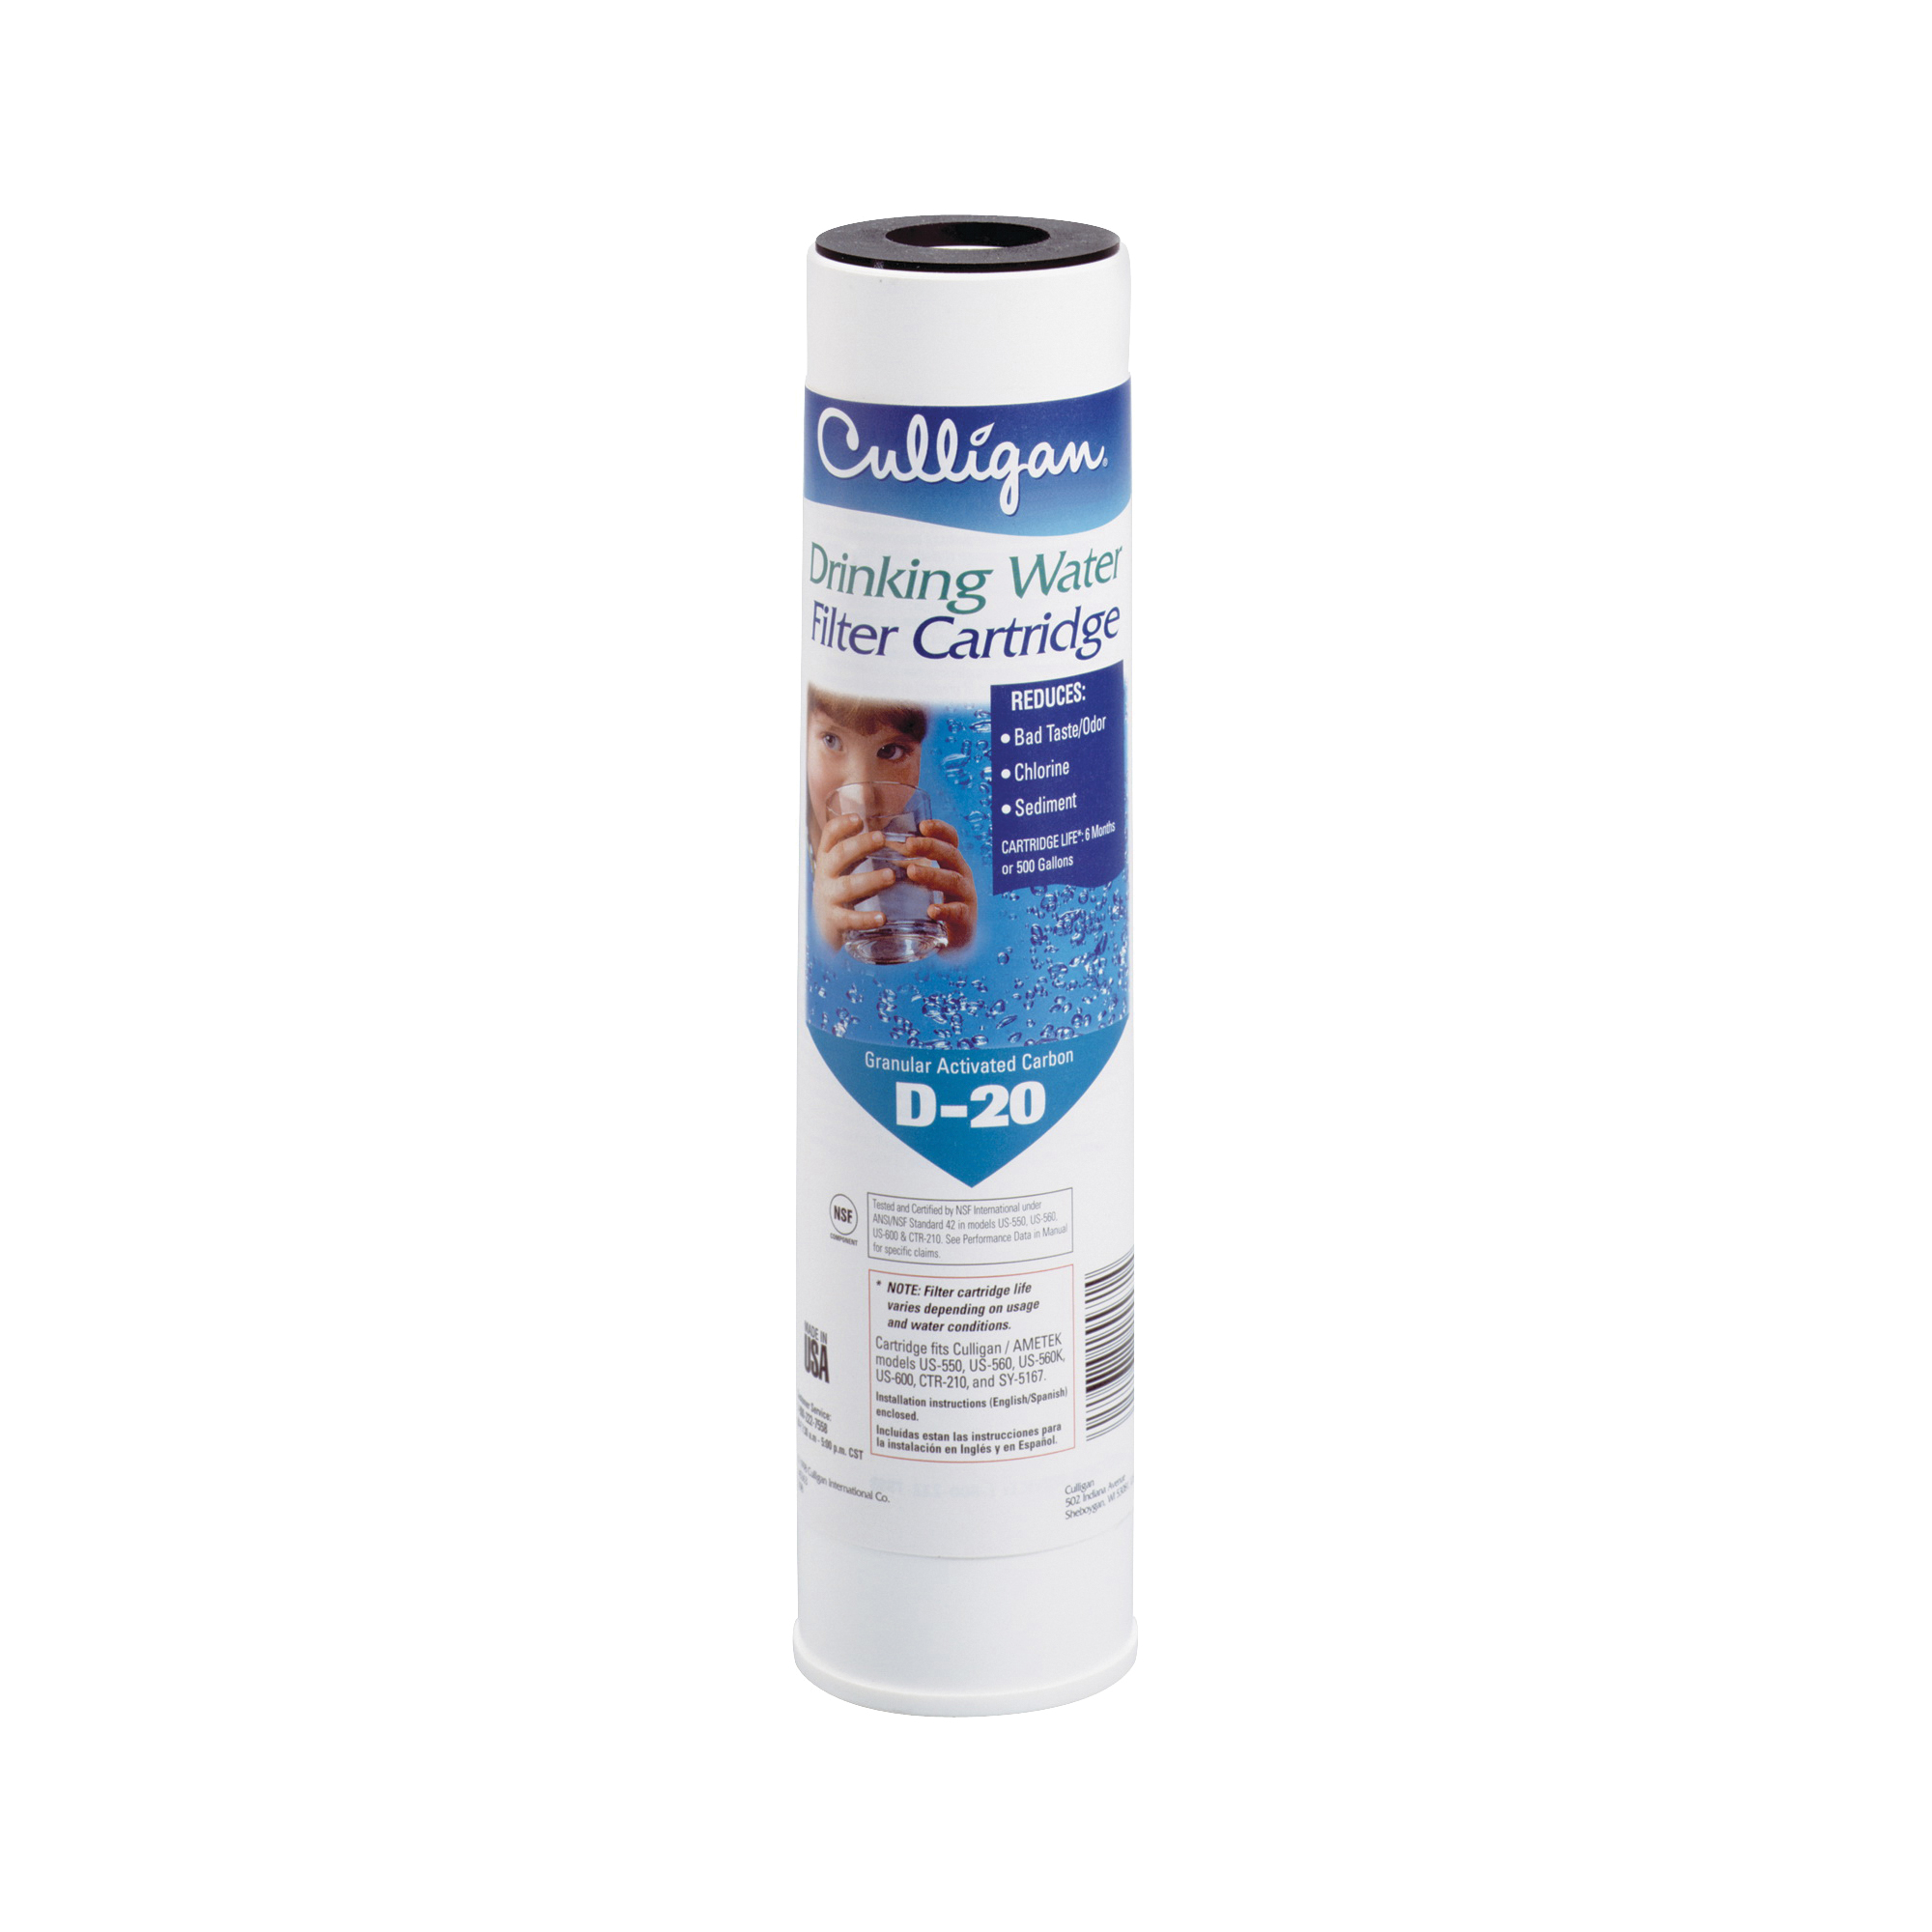 Picture of Culligan D-20A Drinking Water Replacement Filter